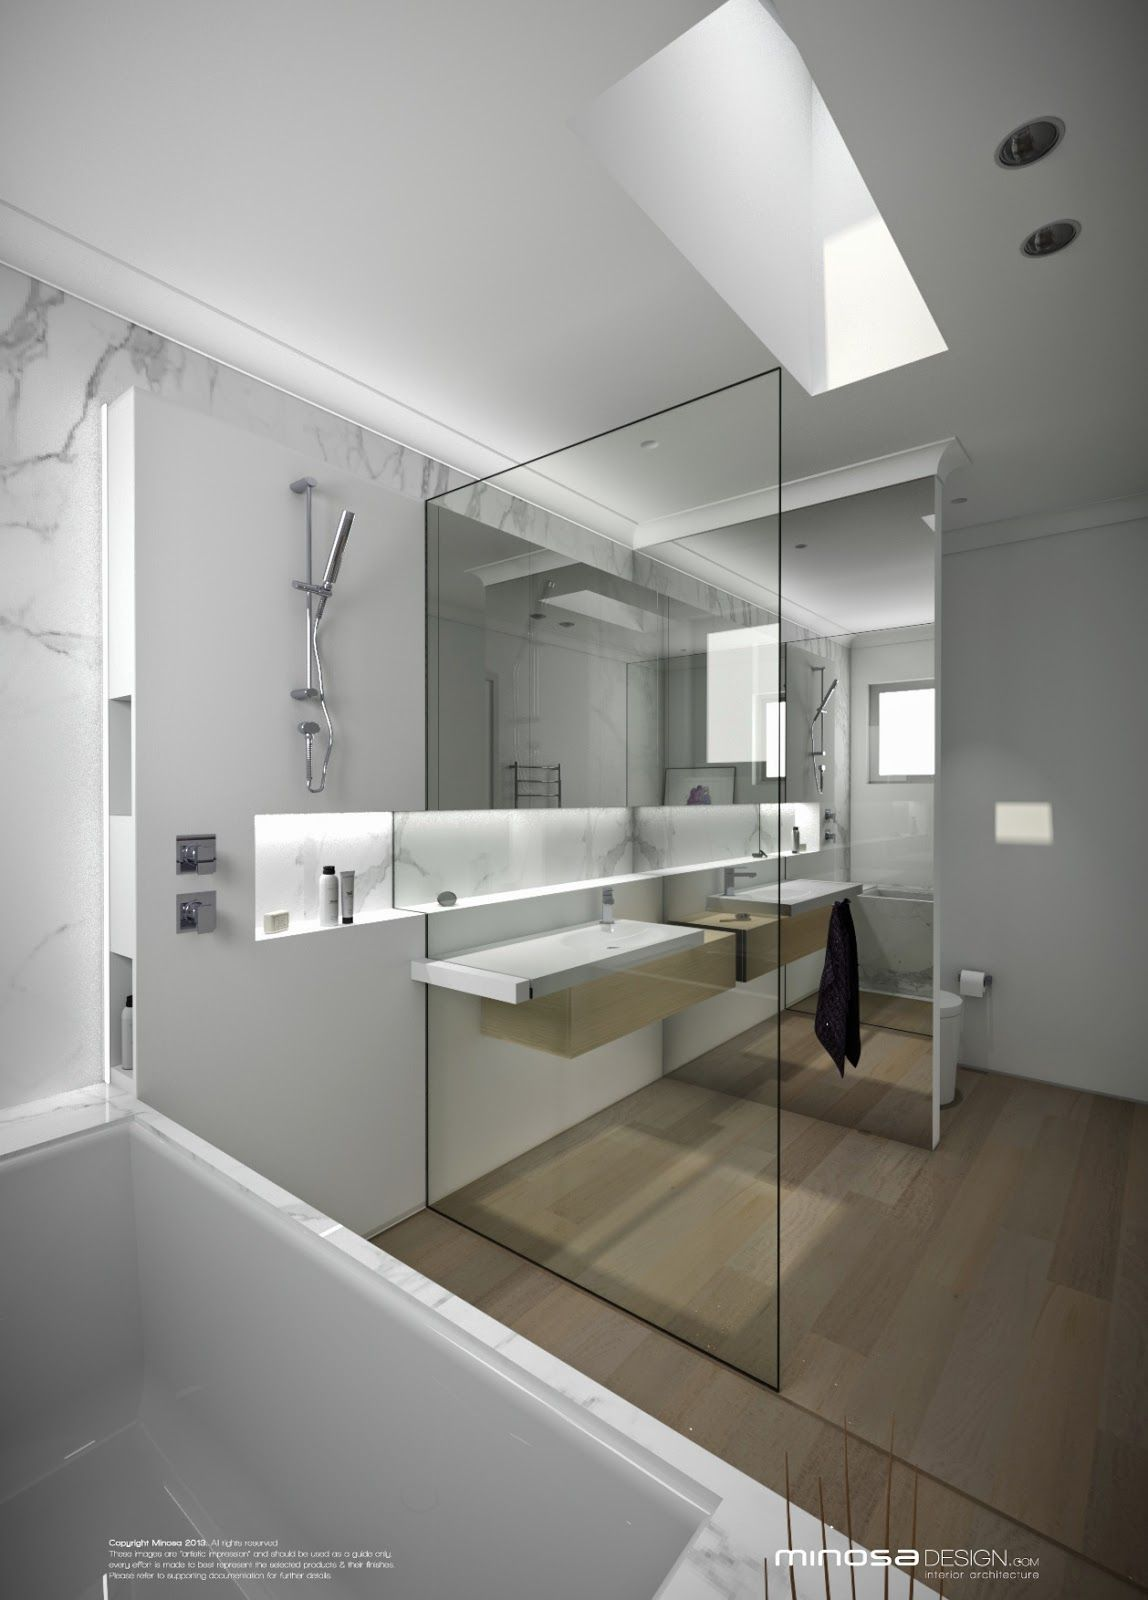 bathroom vanities, white wall, white marble wall, white floating vanity, wooden floor, glass partition